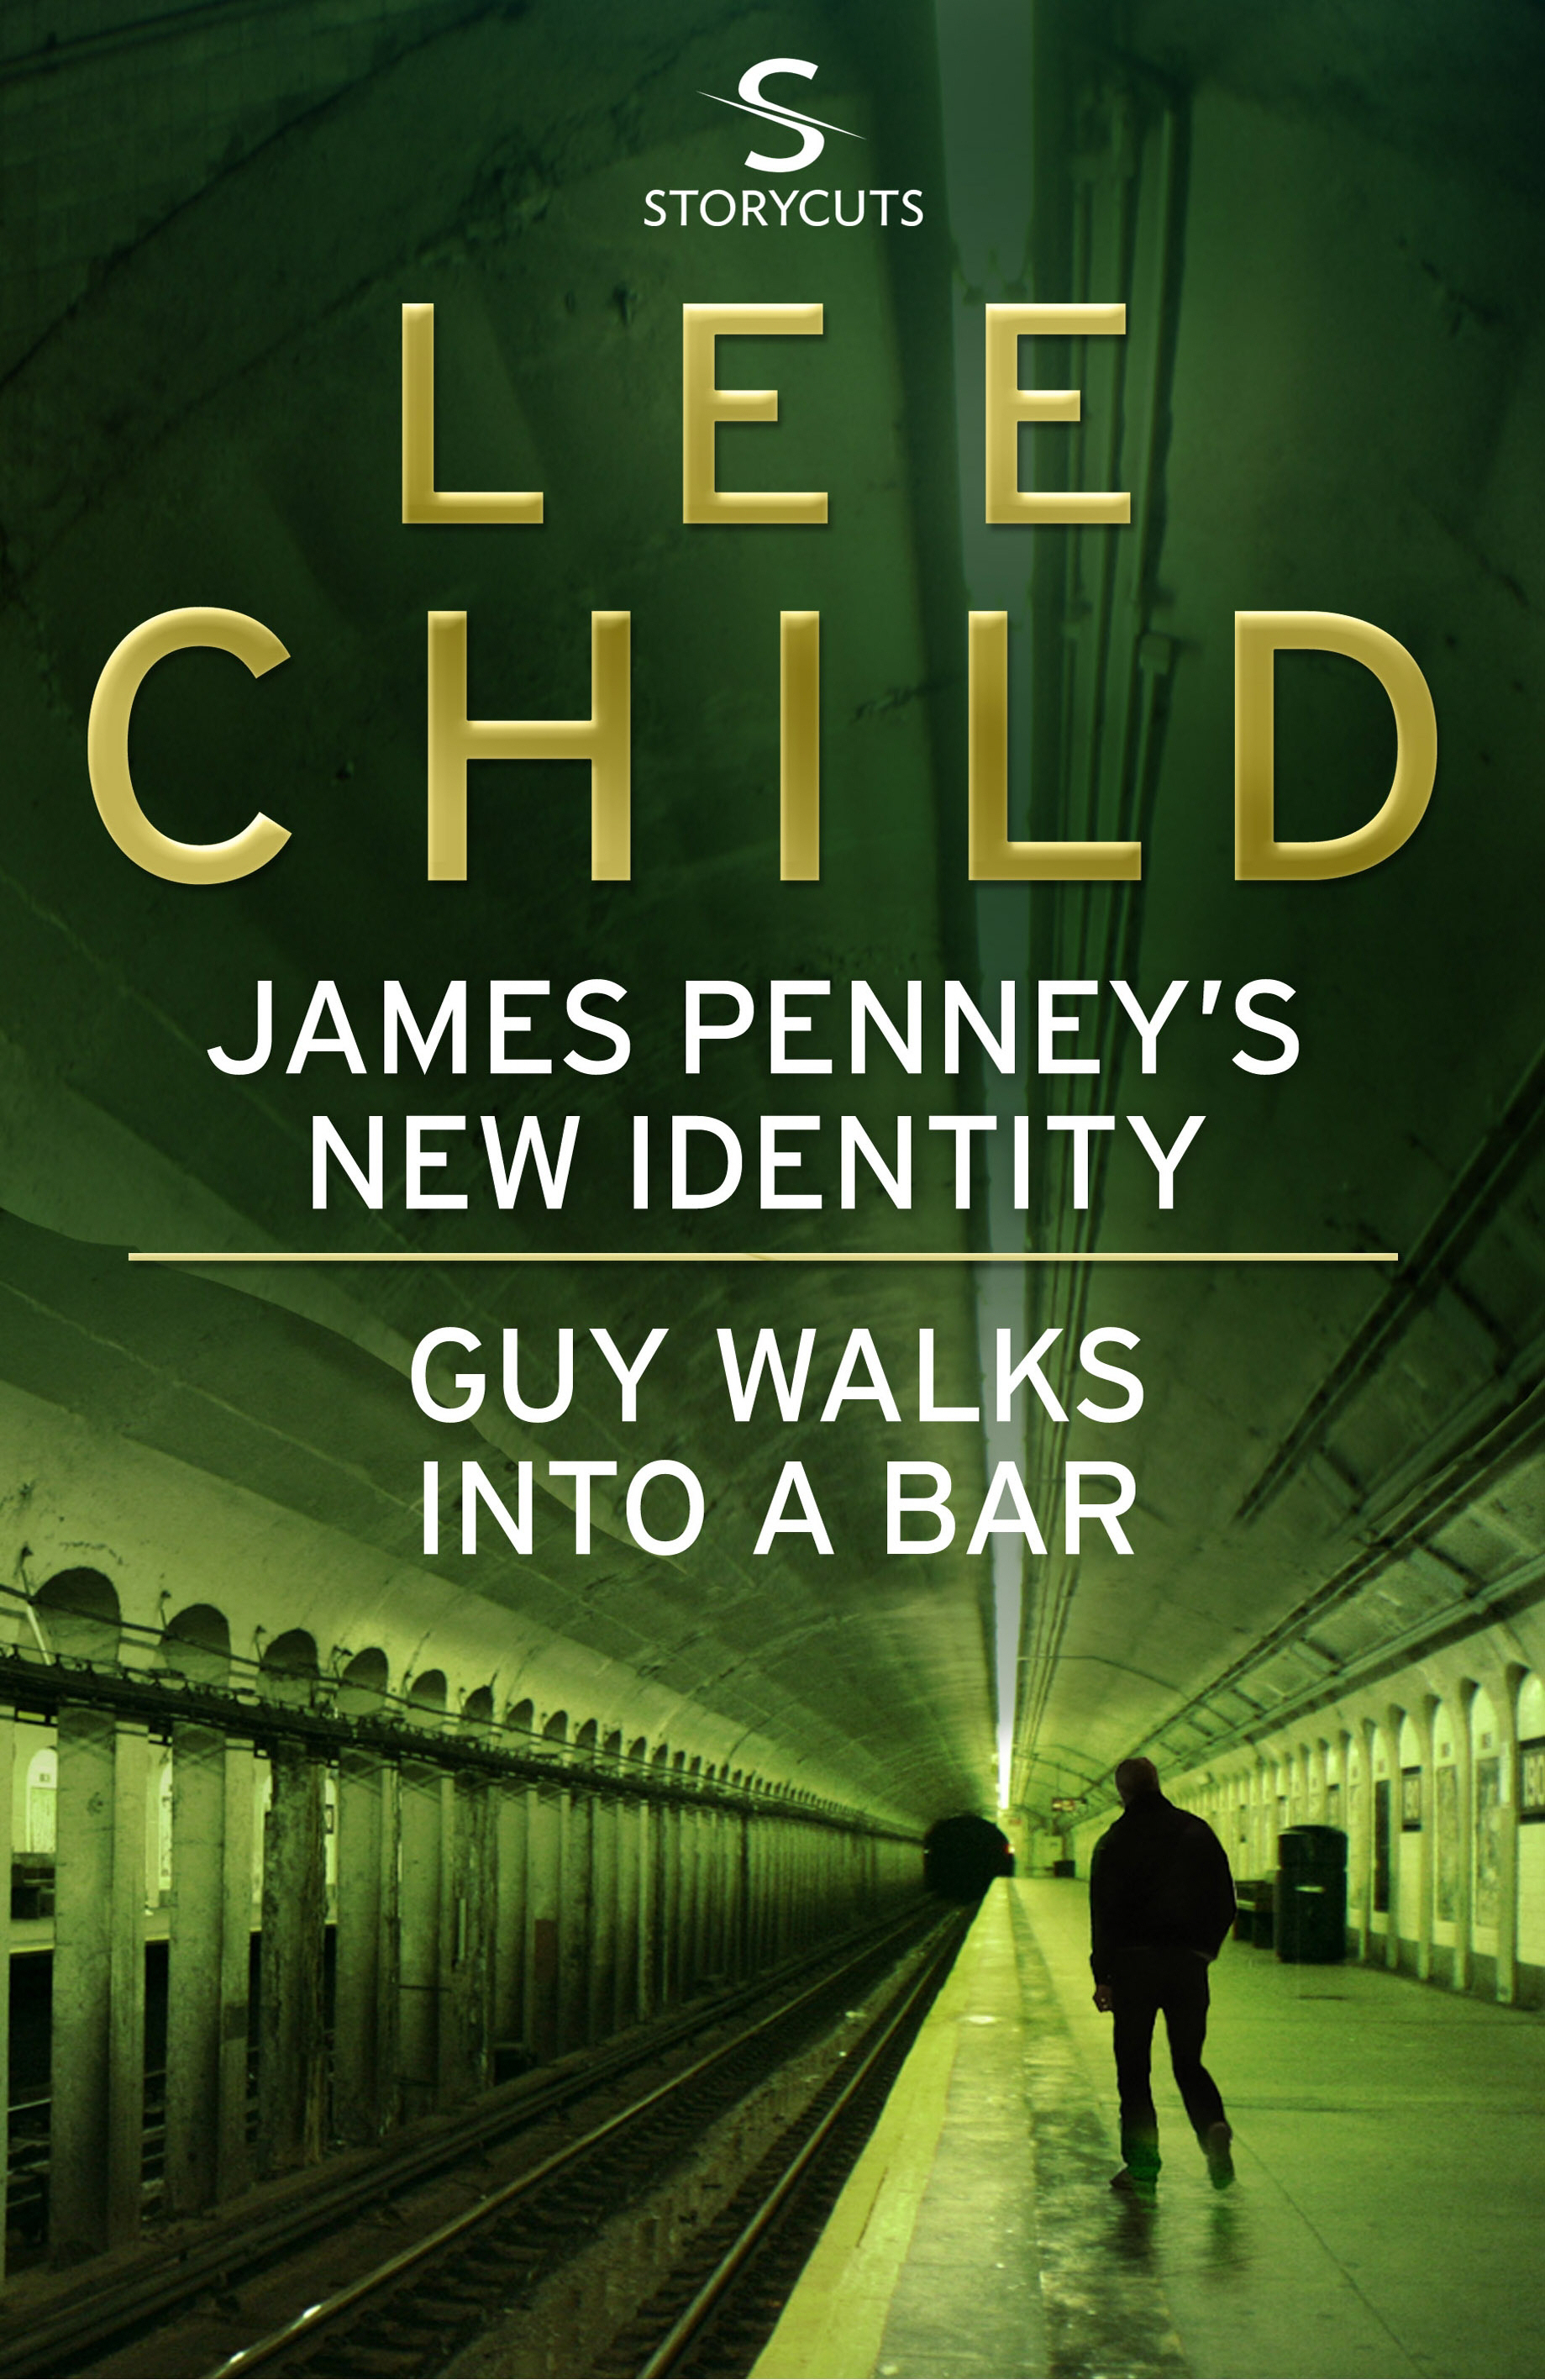 James Penney's New Identity/Guy Walks Into a Bar (Storycuts)